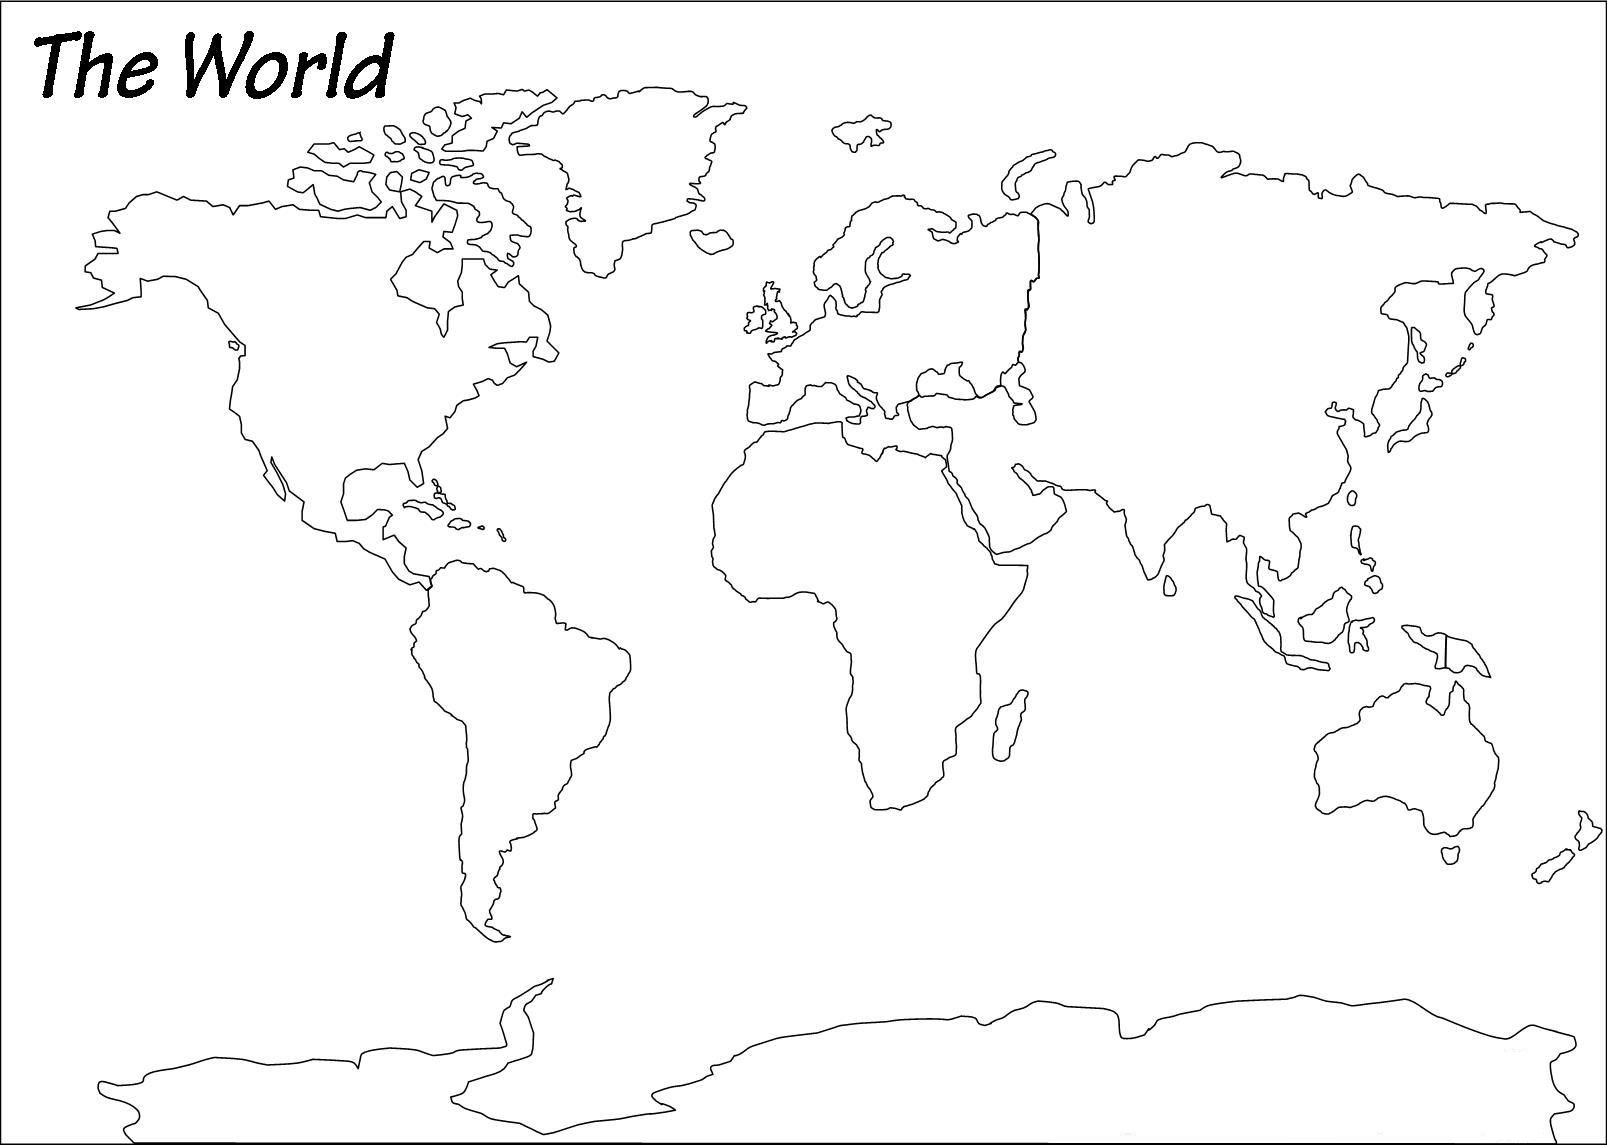 Picture of: The World Antique Outline Map 1983 Large Printable Hd And Standard Map Whatsanswer